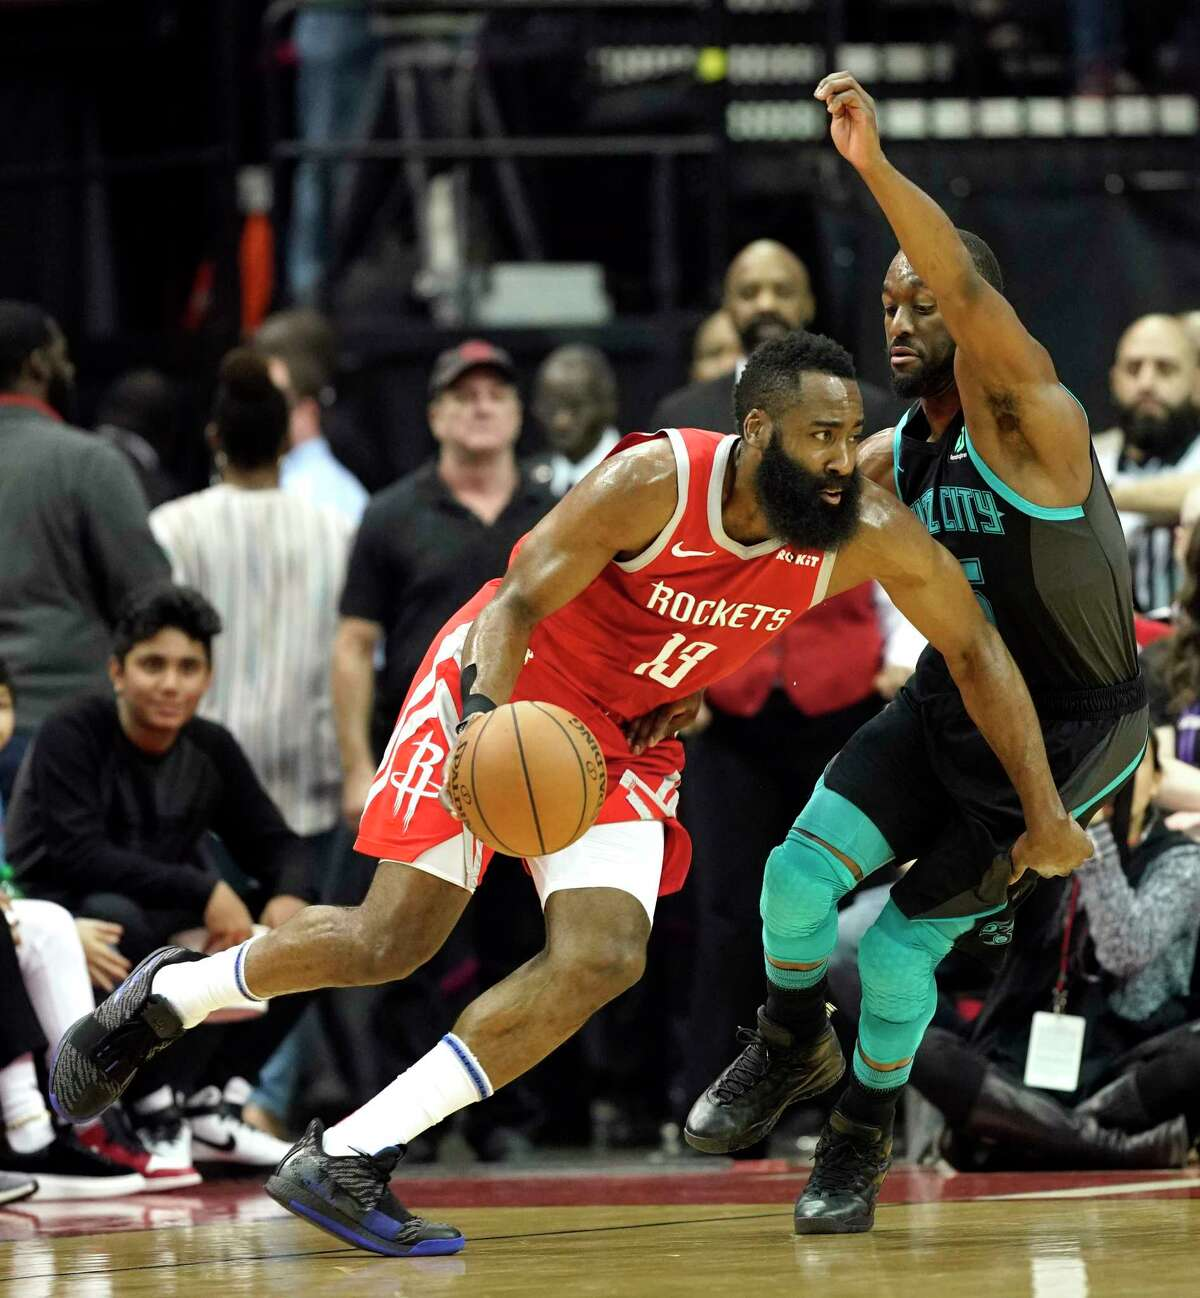 Houston Rockets' James Harden (13) drives toward the basket as Charlotte Hornets' Kemba Walker defends during the first half of an NBA basketball game Monday, March 11, 2019, in Houston. (AP Photo/David J. Phillip)